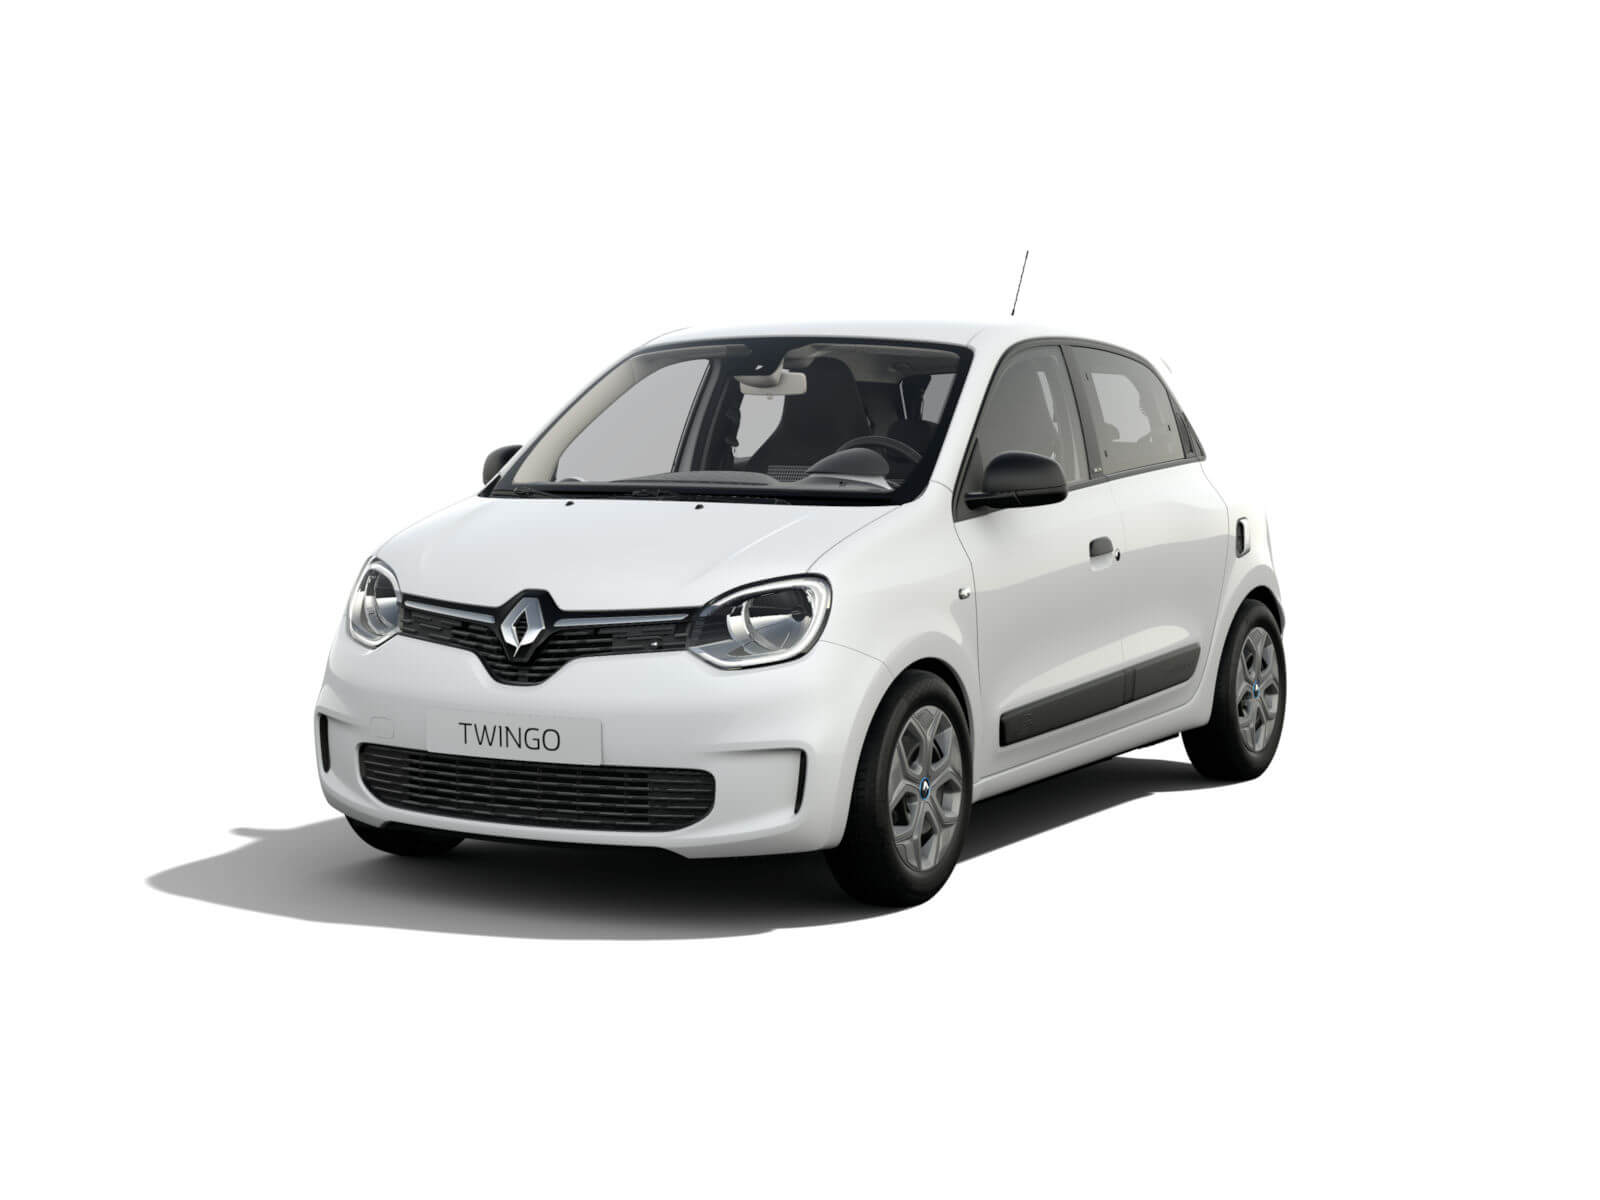 Renault TWINGO ELECTRIC (inkl. Batterie) – Kristall-Weiß